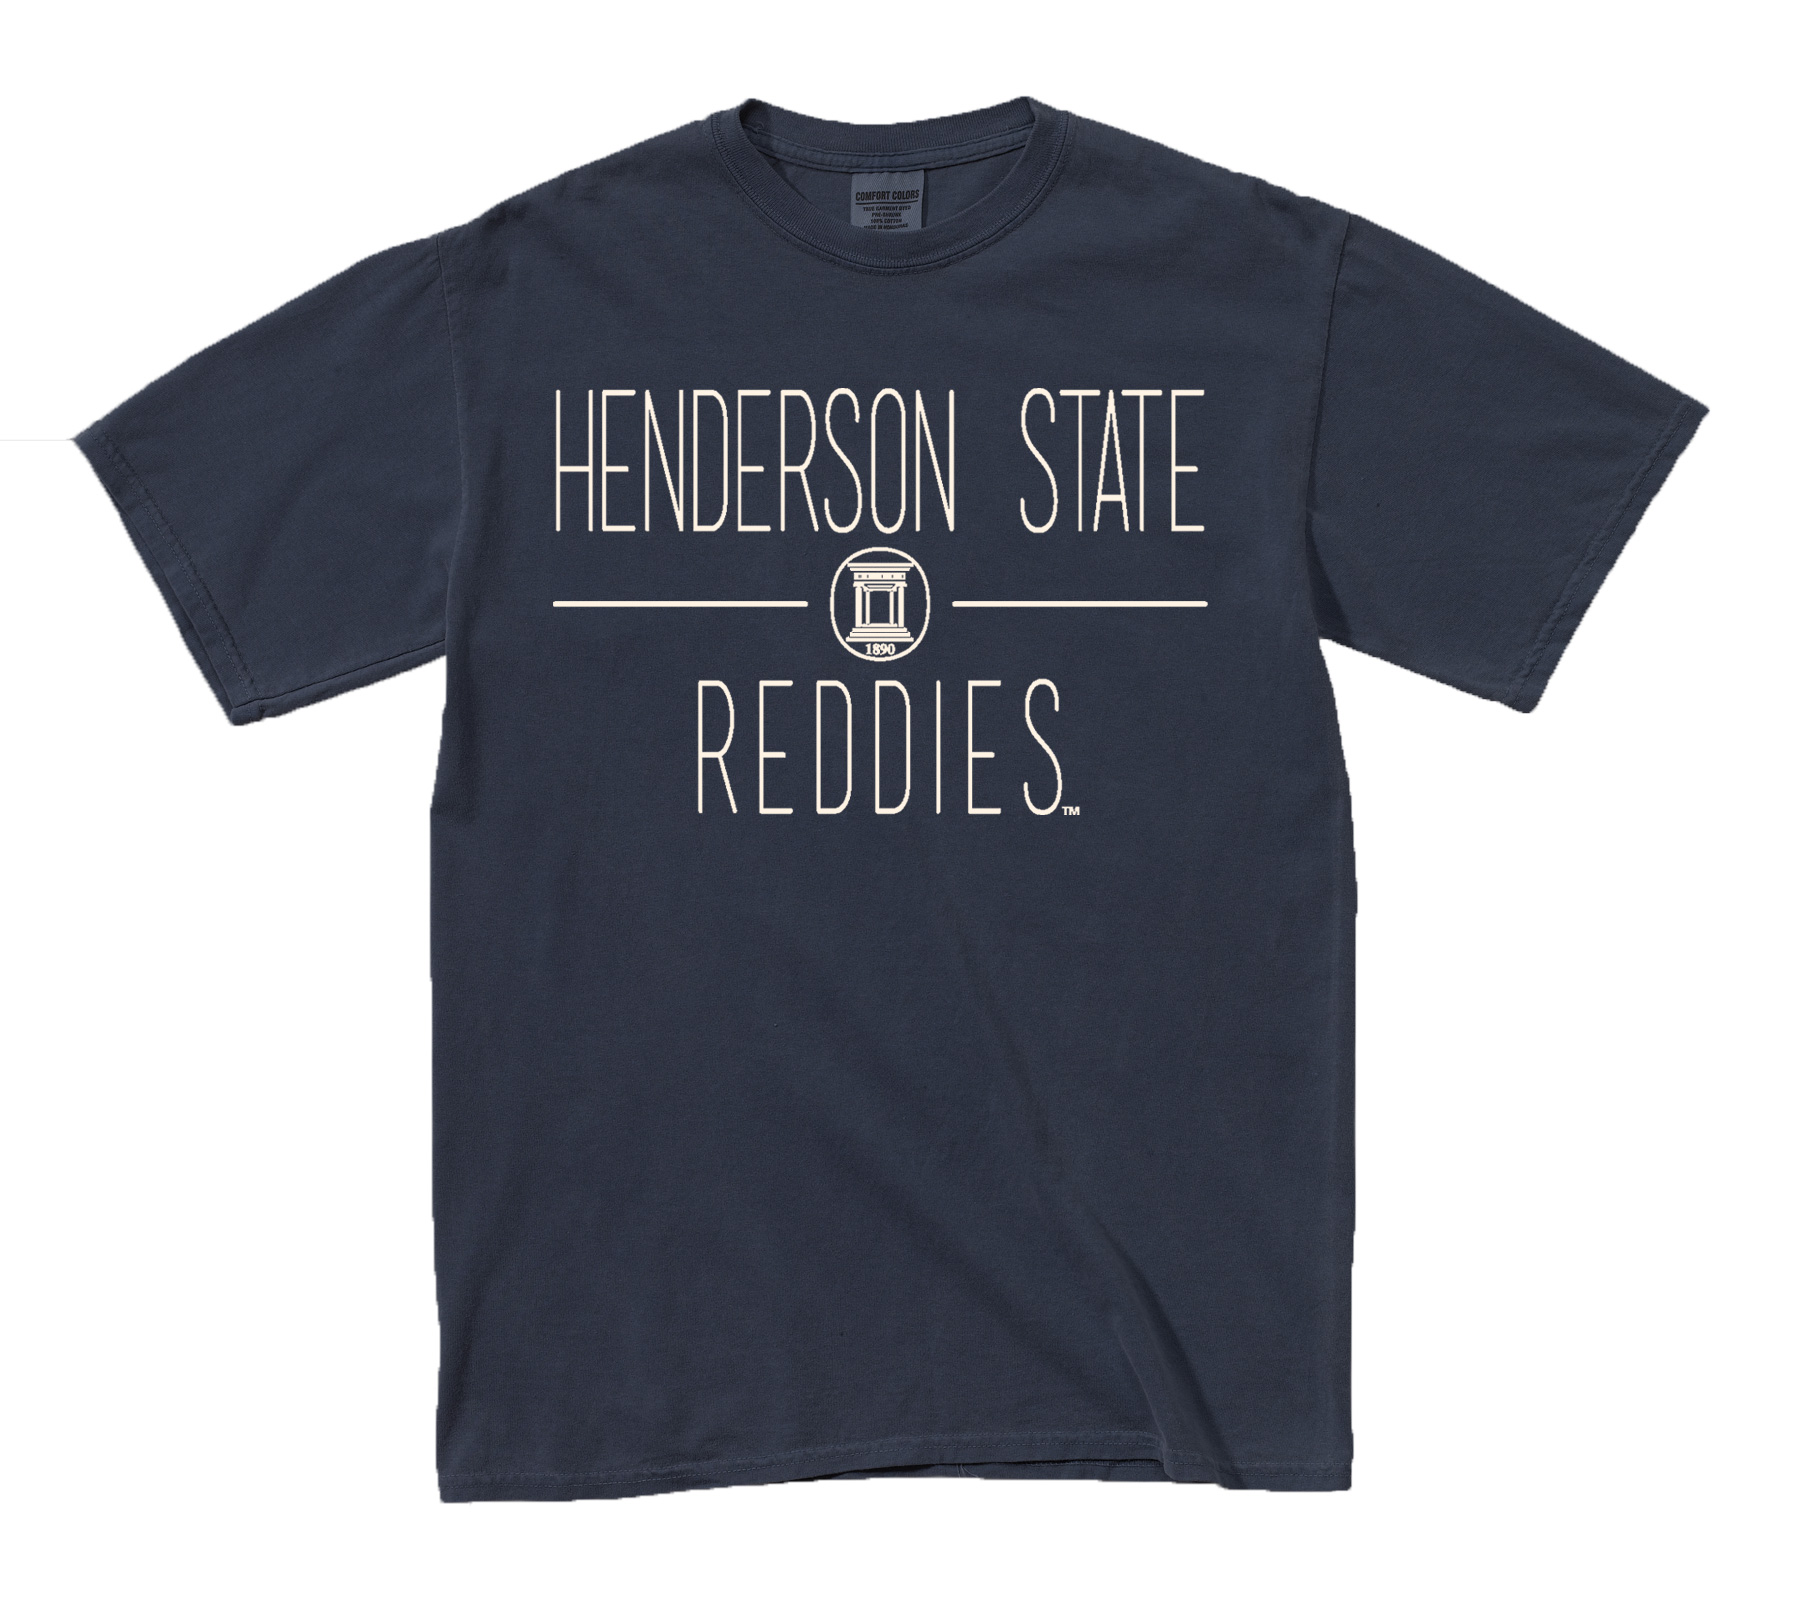 Henderson State Reddies Comfort Colors T-shirt